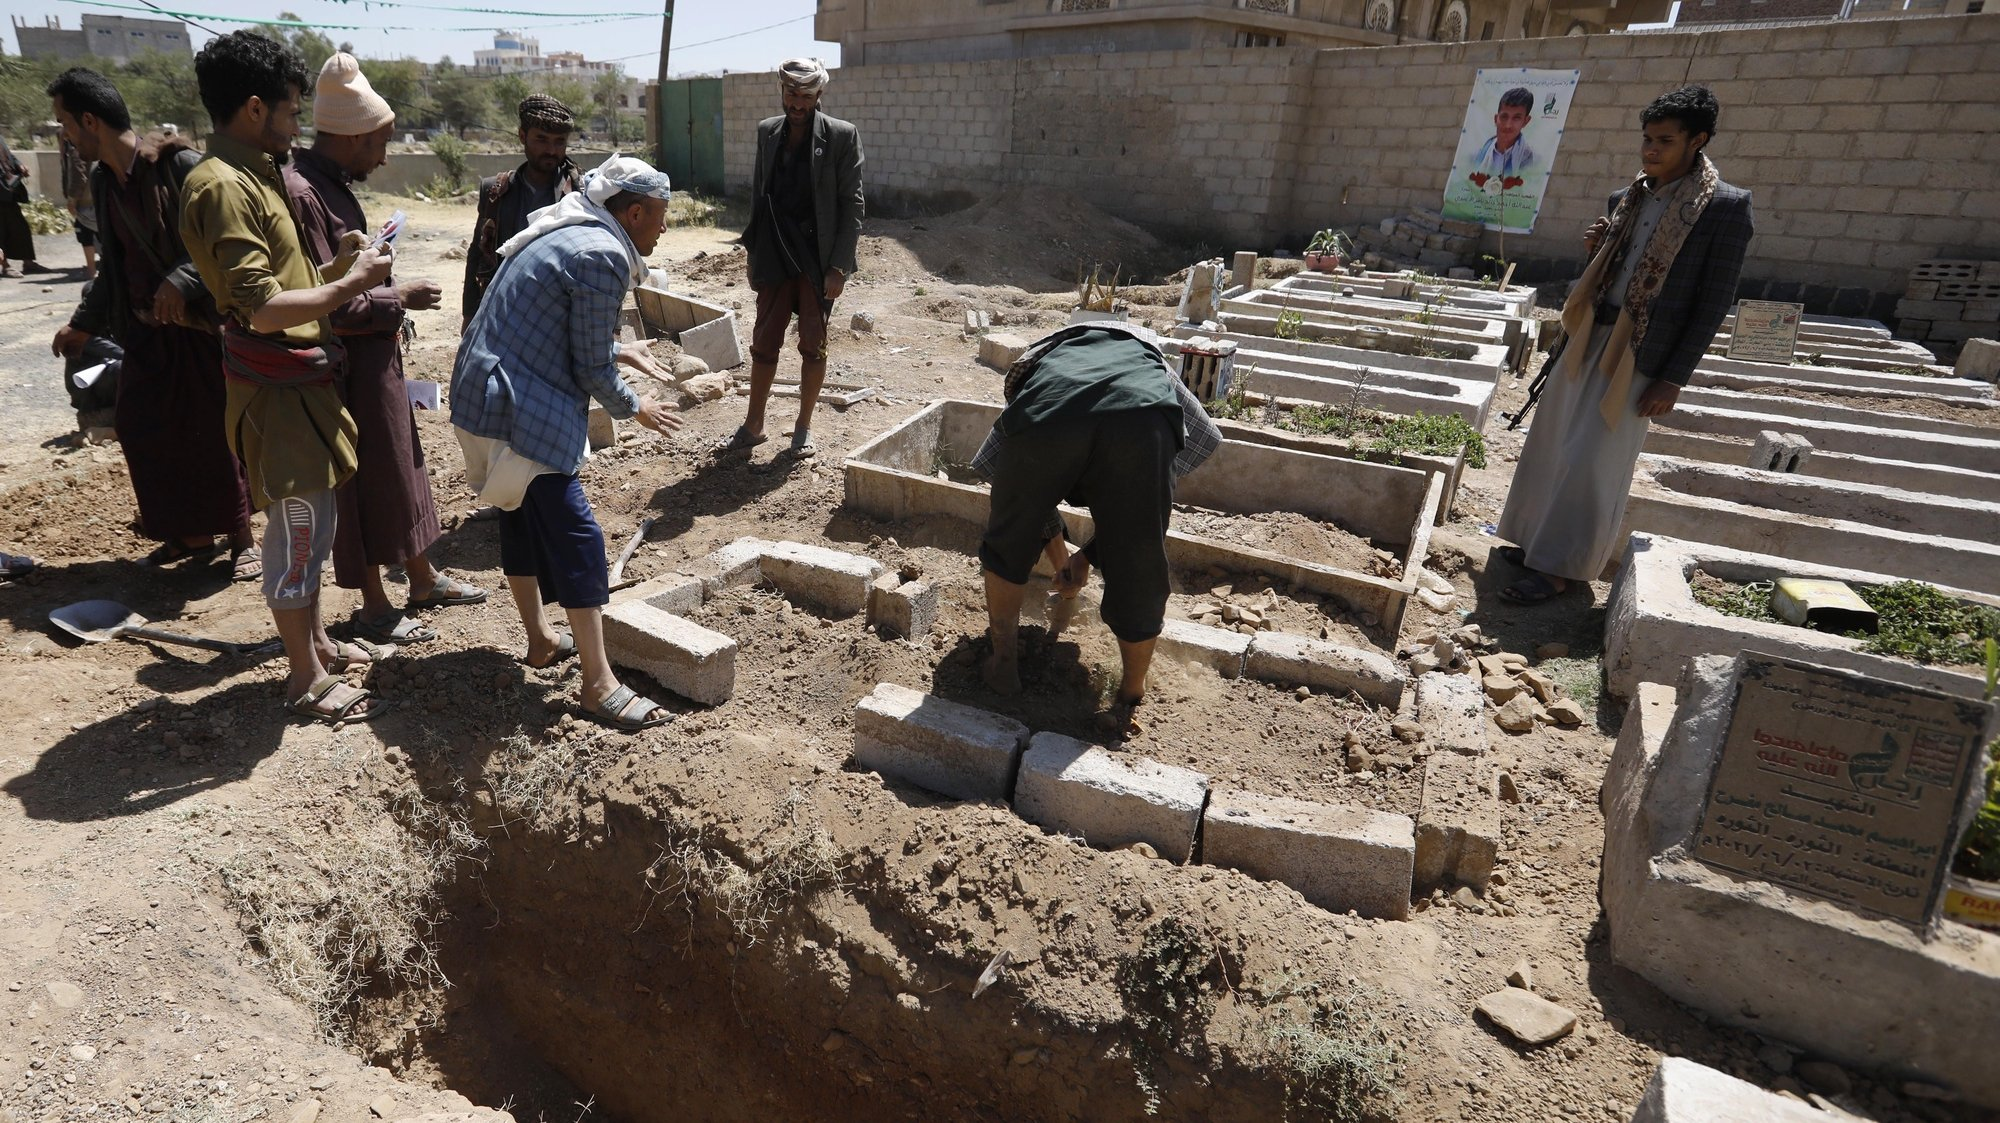 epa09527254 Yemenis bury the body of a slain Houthi fighter near a freshly dug grave during a funeral at a cemetery dedicated to slain Houthi fighters, in Sana'a, Yemen, 16 October 2021. Saudi-led coalition's airstrikes have allegedly targeted Houthi reinforcements heading to the front lines in the Yemeni province of Marib, killing more than 180 Houthi fighters in the past two days as the Houthis intensify their offensive in quest for control of the oil-rich province, the Yemeni government's last northern stronghold. The UN has estimated that at least 235 civilians were killed or injured during hostilities in Yemen in September 2021, the second highest monthly death toll in two years of ongoing conflict and the Saudi-led bombing campaign.  EPA/YAHYA ARHAB